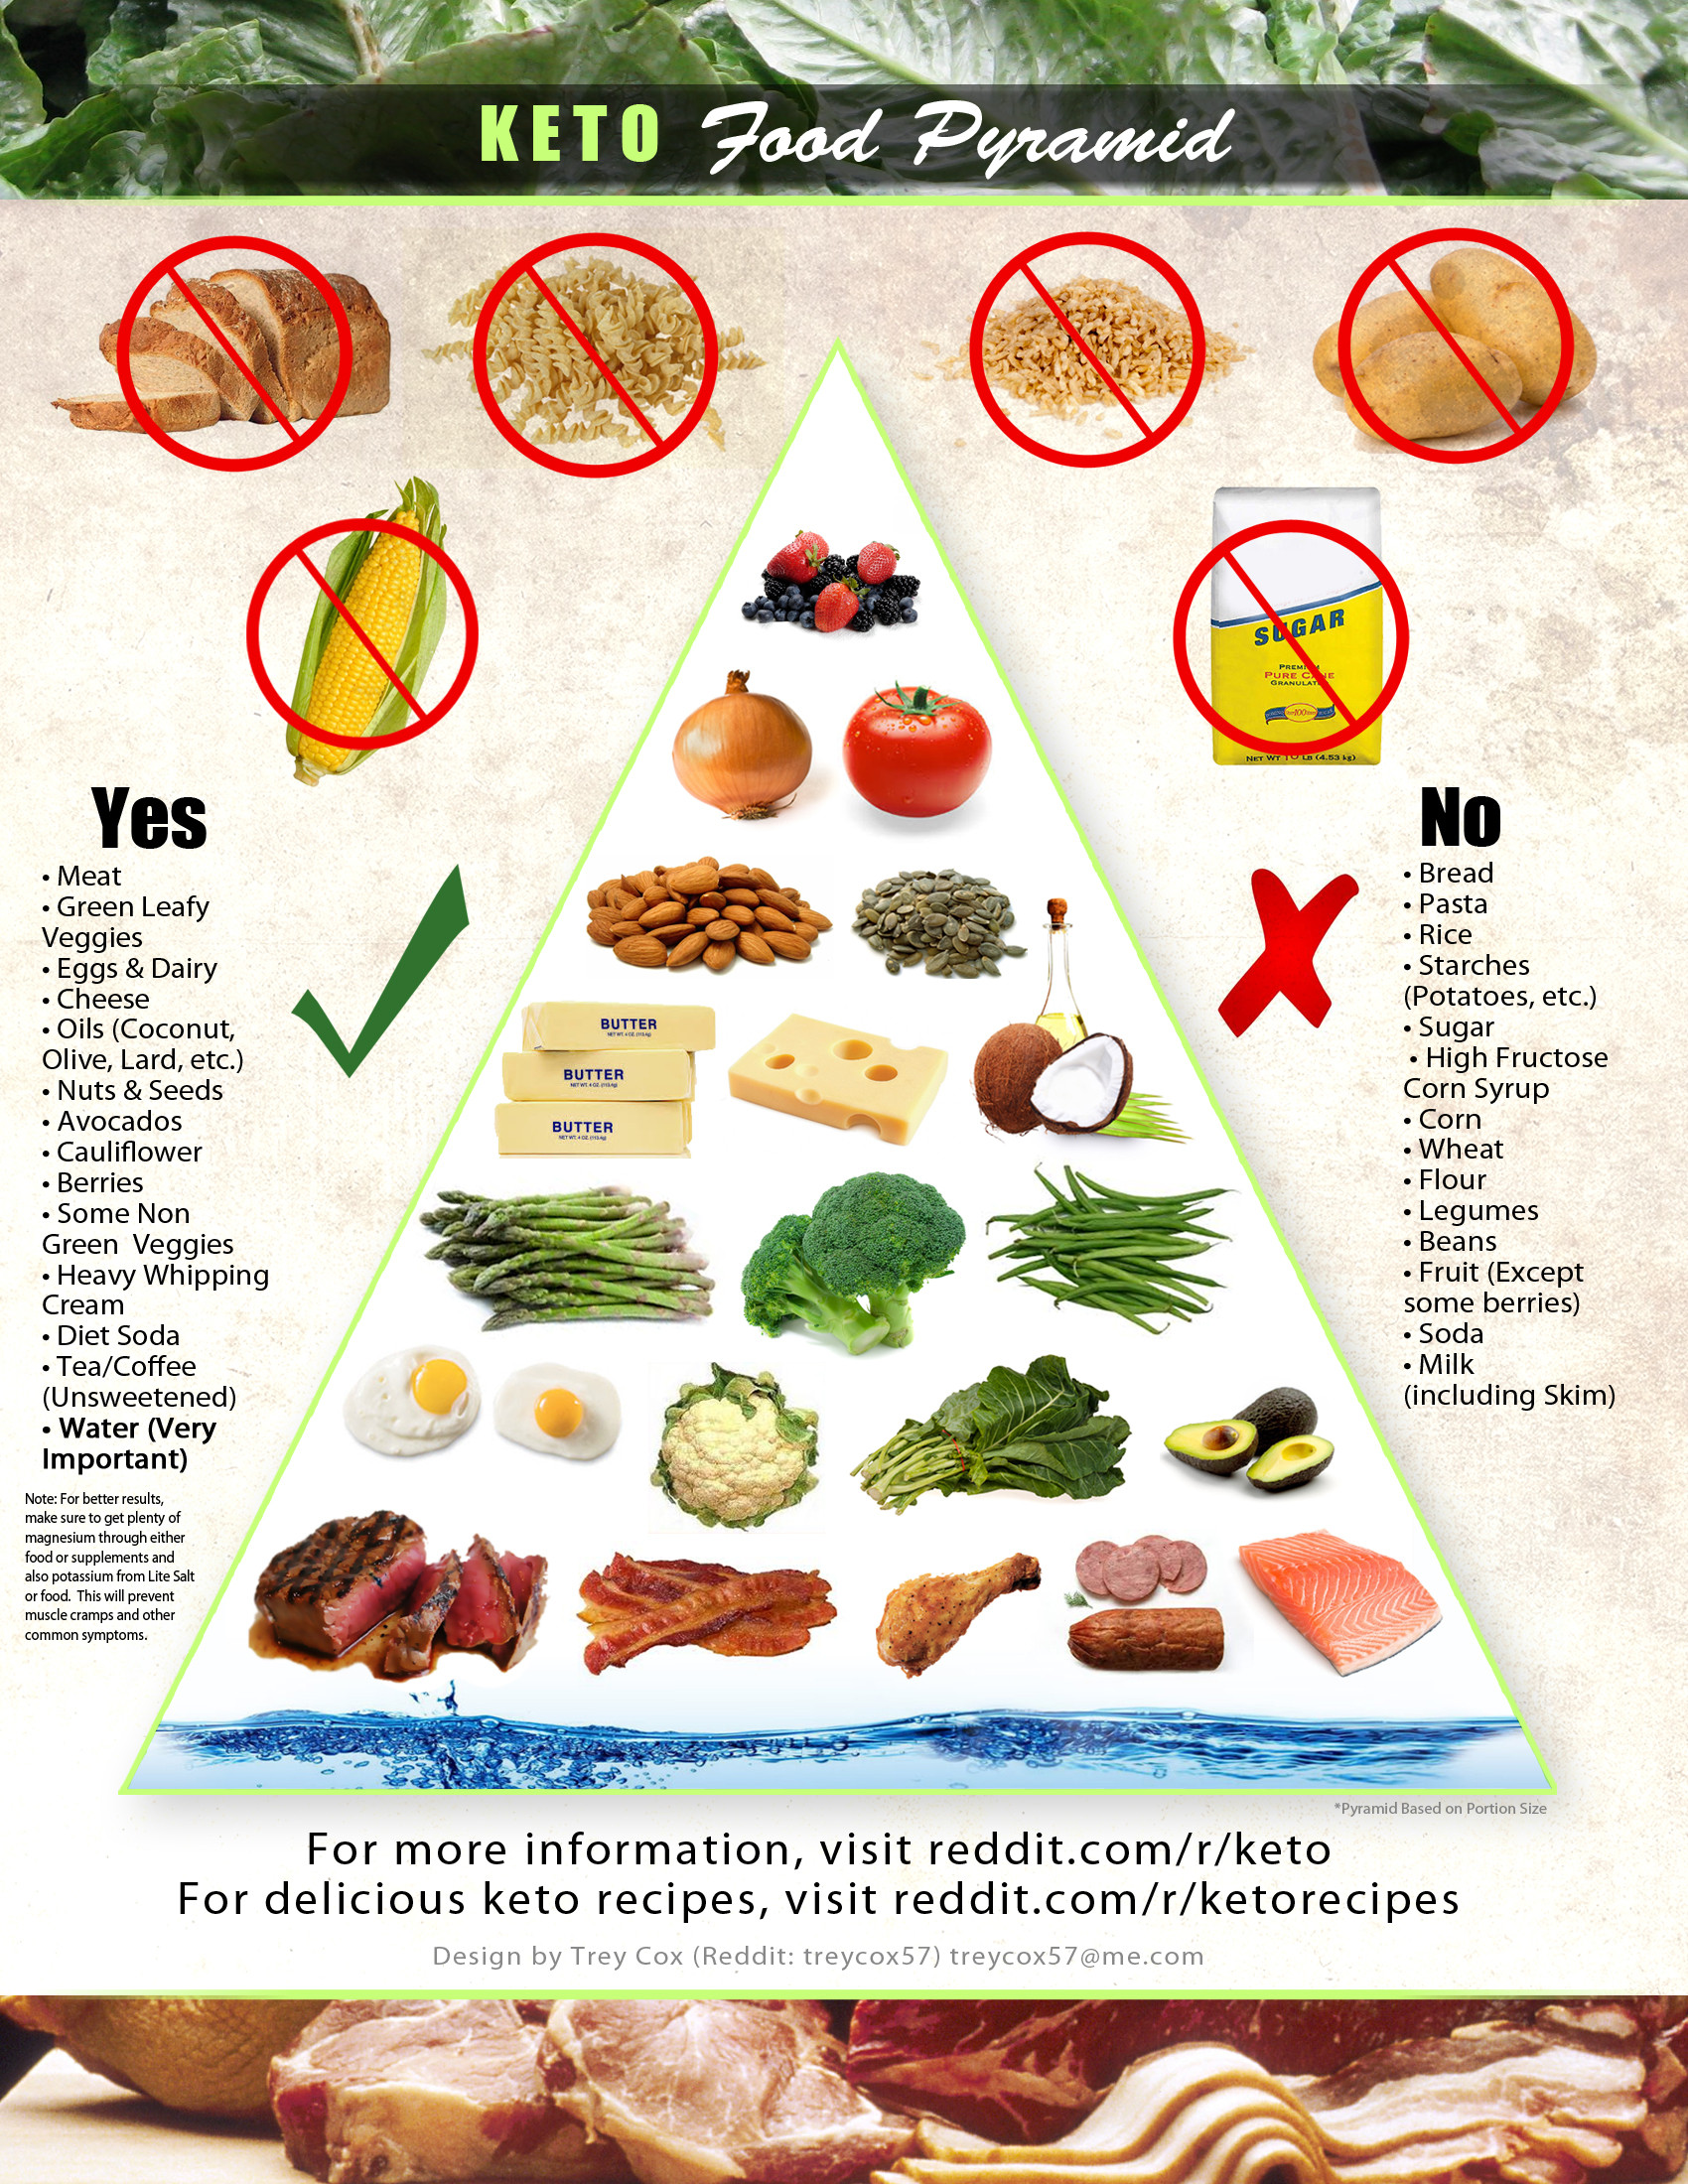 can you have corn on keto diet